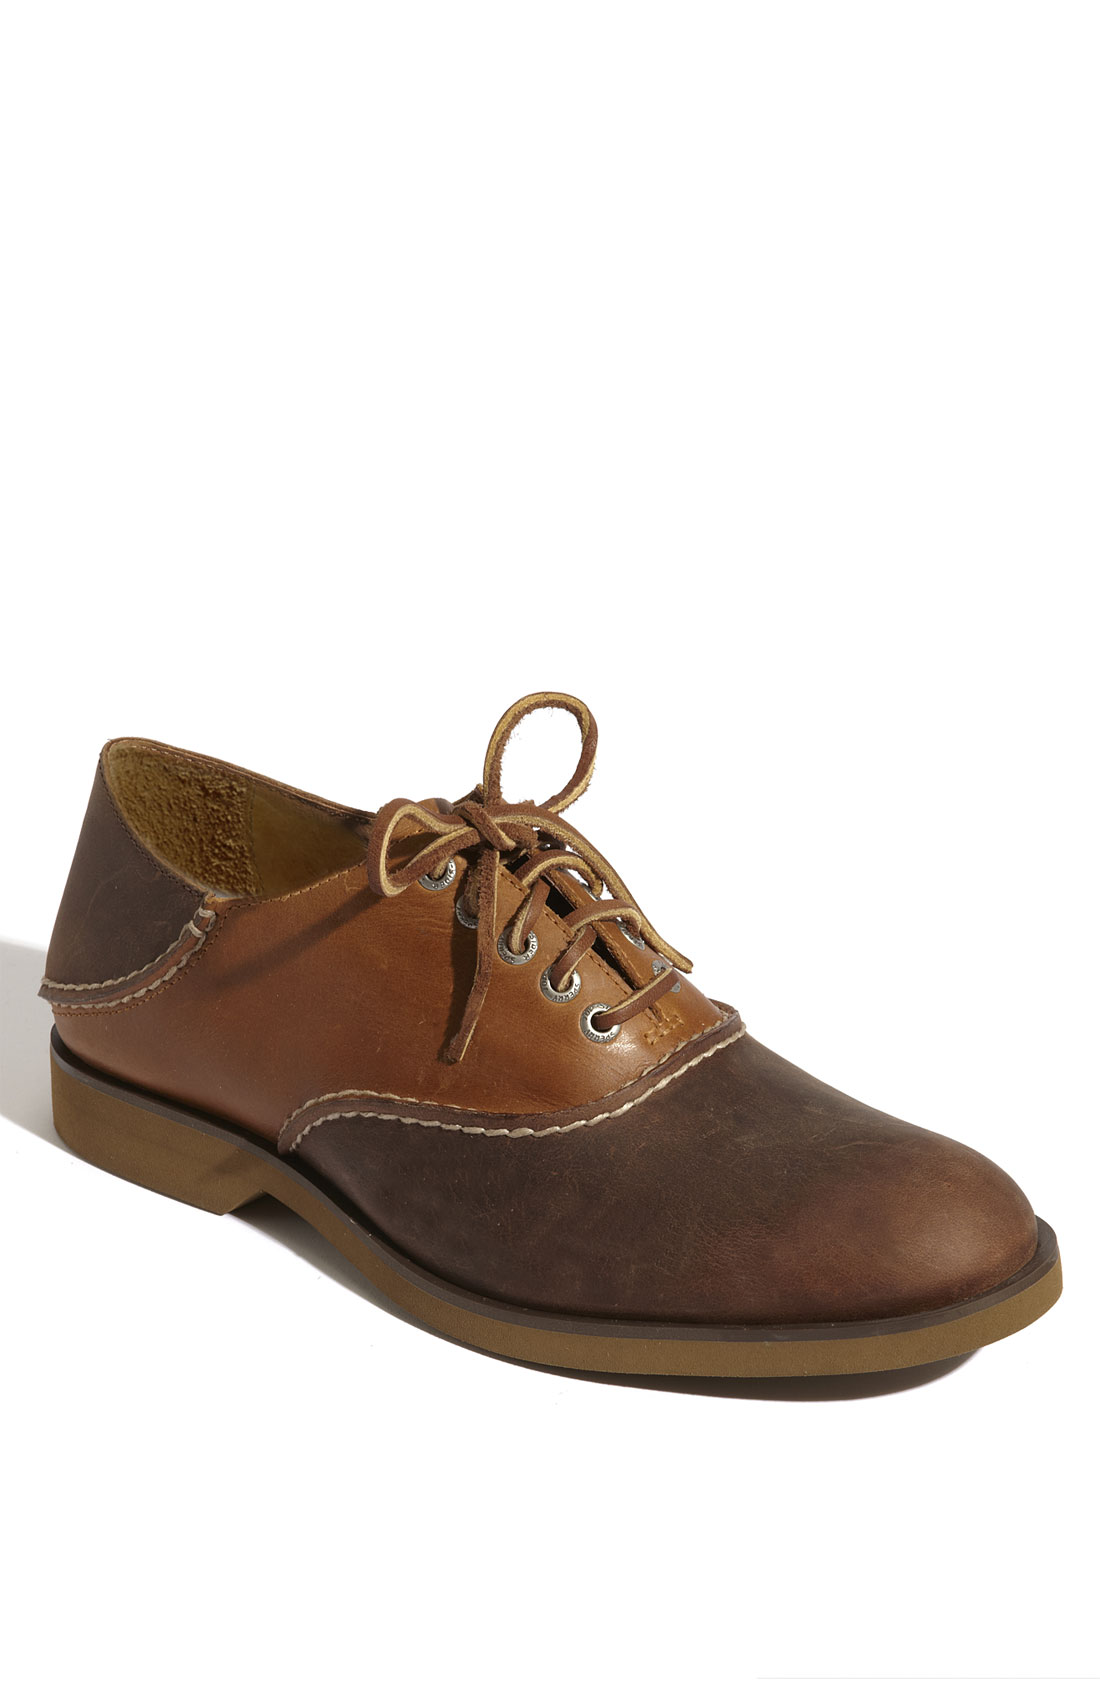 sperry top sider boat oxford saddle shoe in brown for